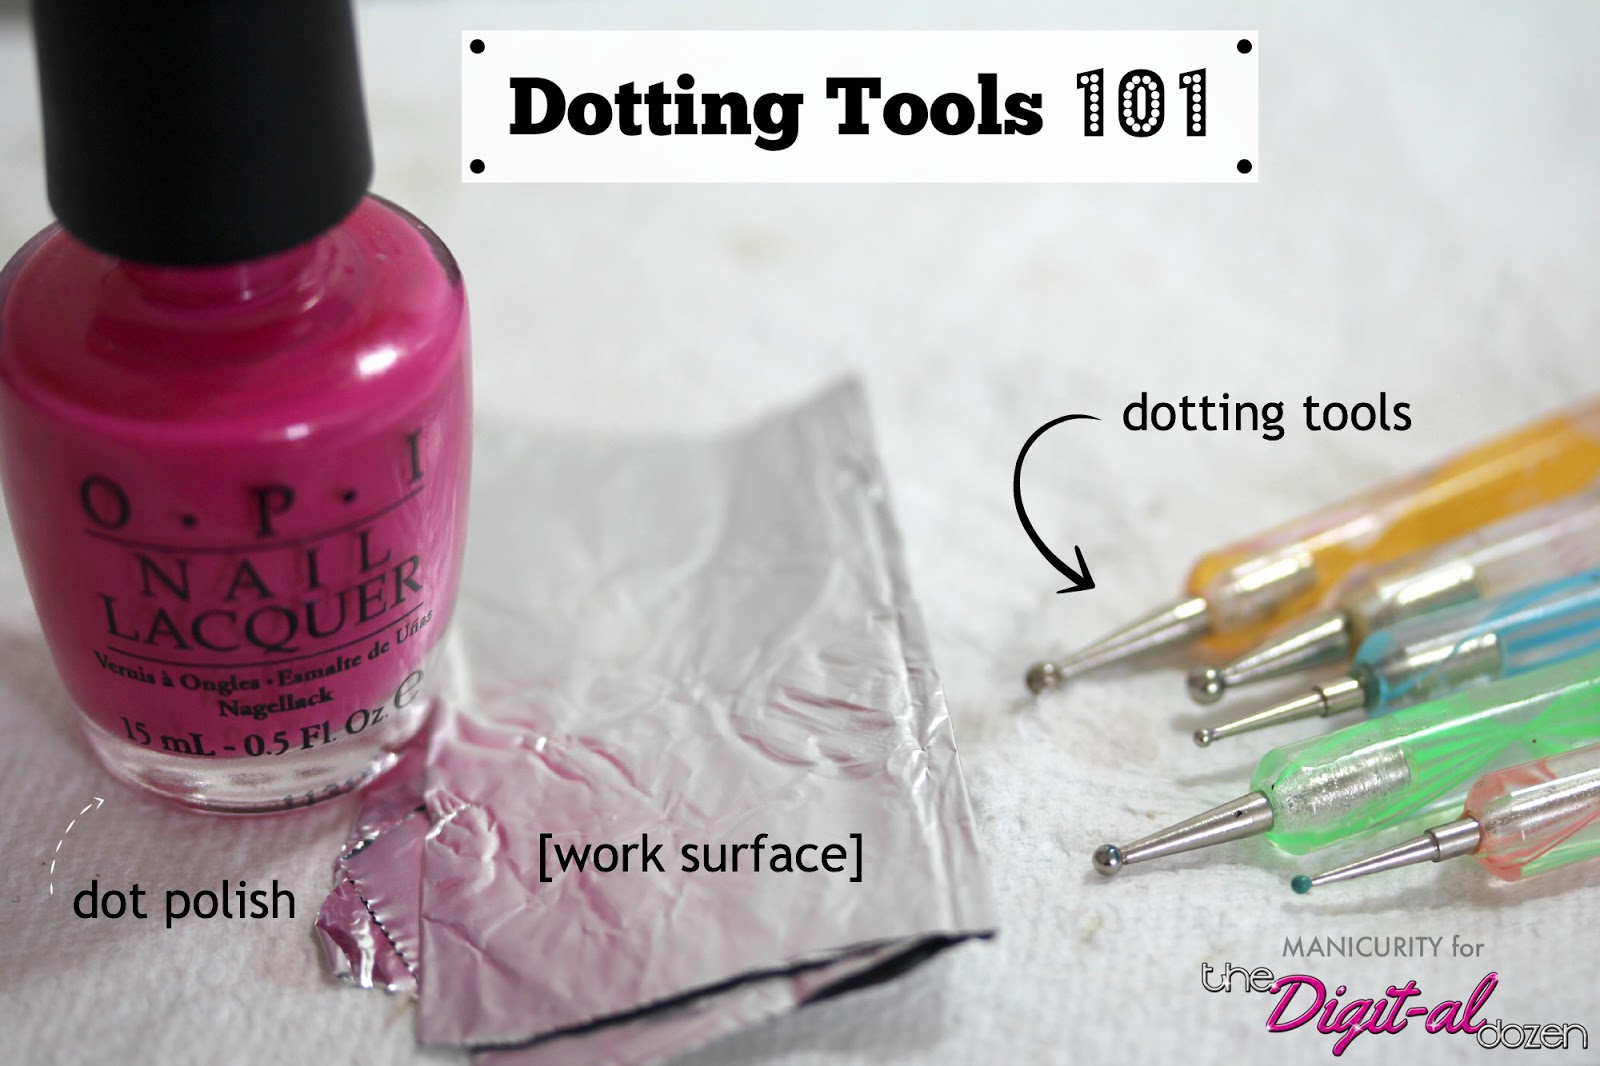 Dotting Tools 101: The Definitive Guide to Getting Dotty - How to Use Dotting Tools for Nail Art (Tips, Tutorial) by Manicurity for The Digital Dozen